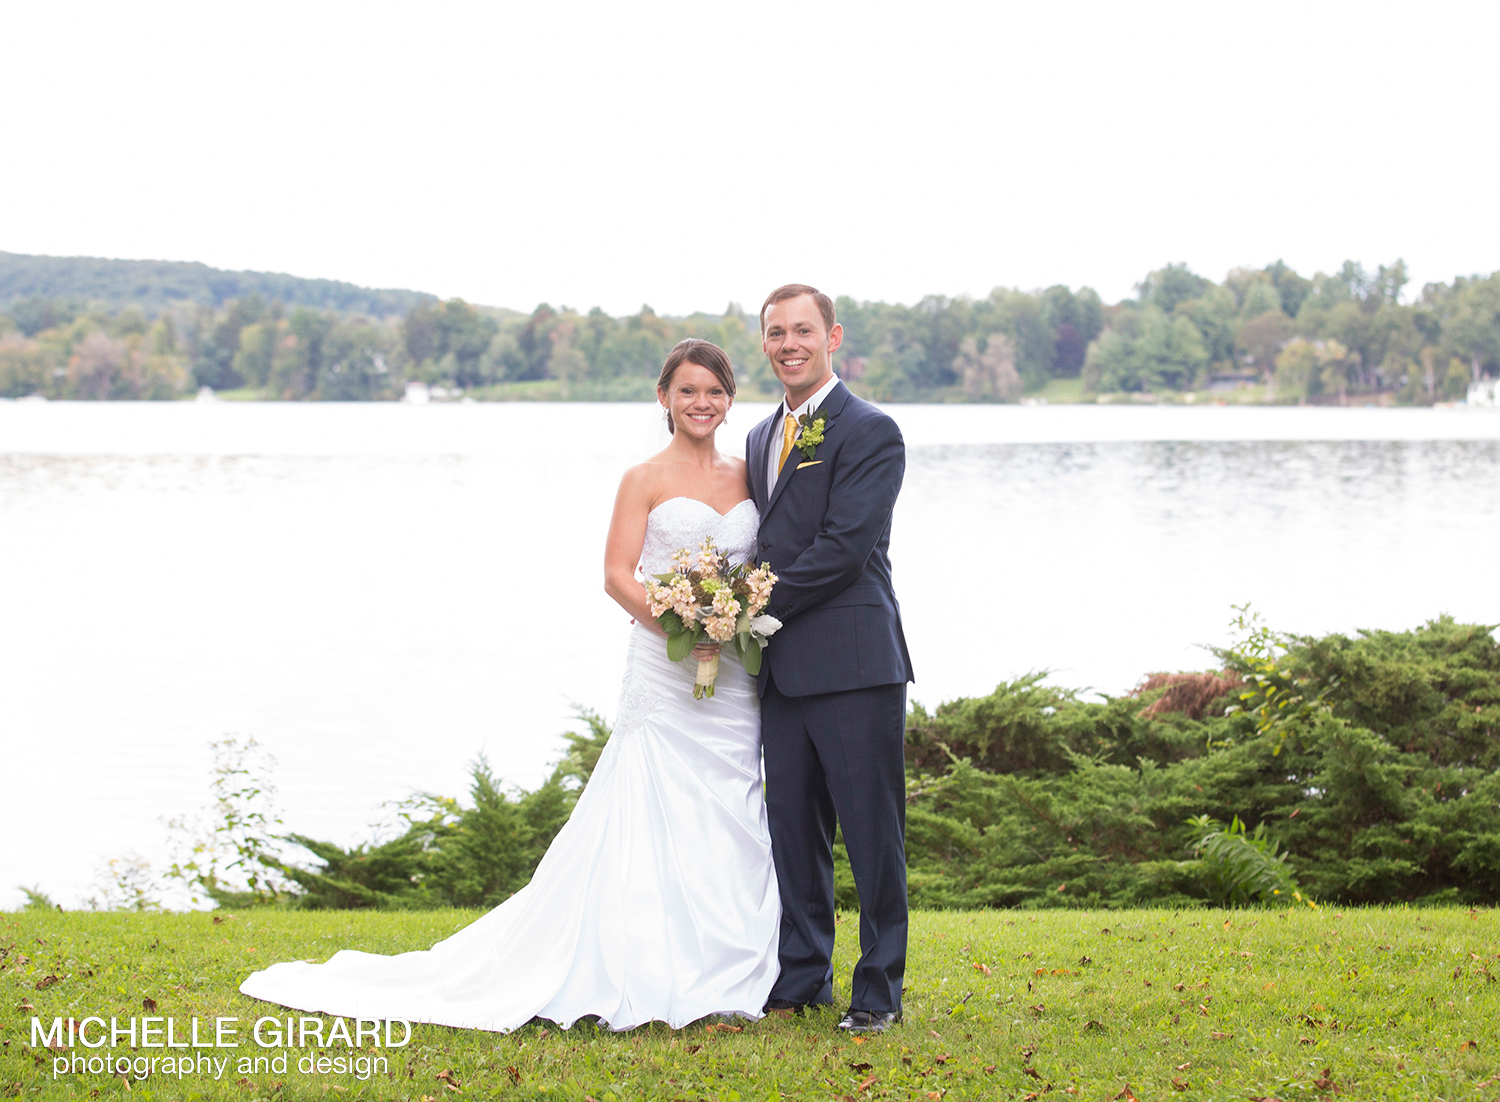 InterlakenInnWedding_LakevilleCT_MichelleGirardPhotography_003.jpg